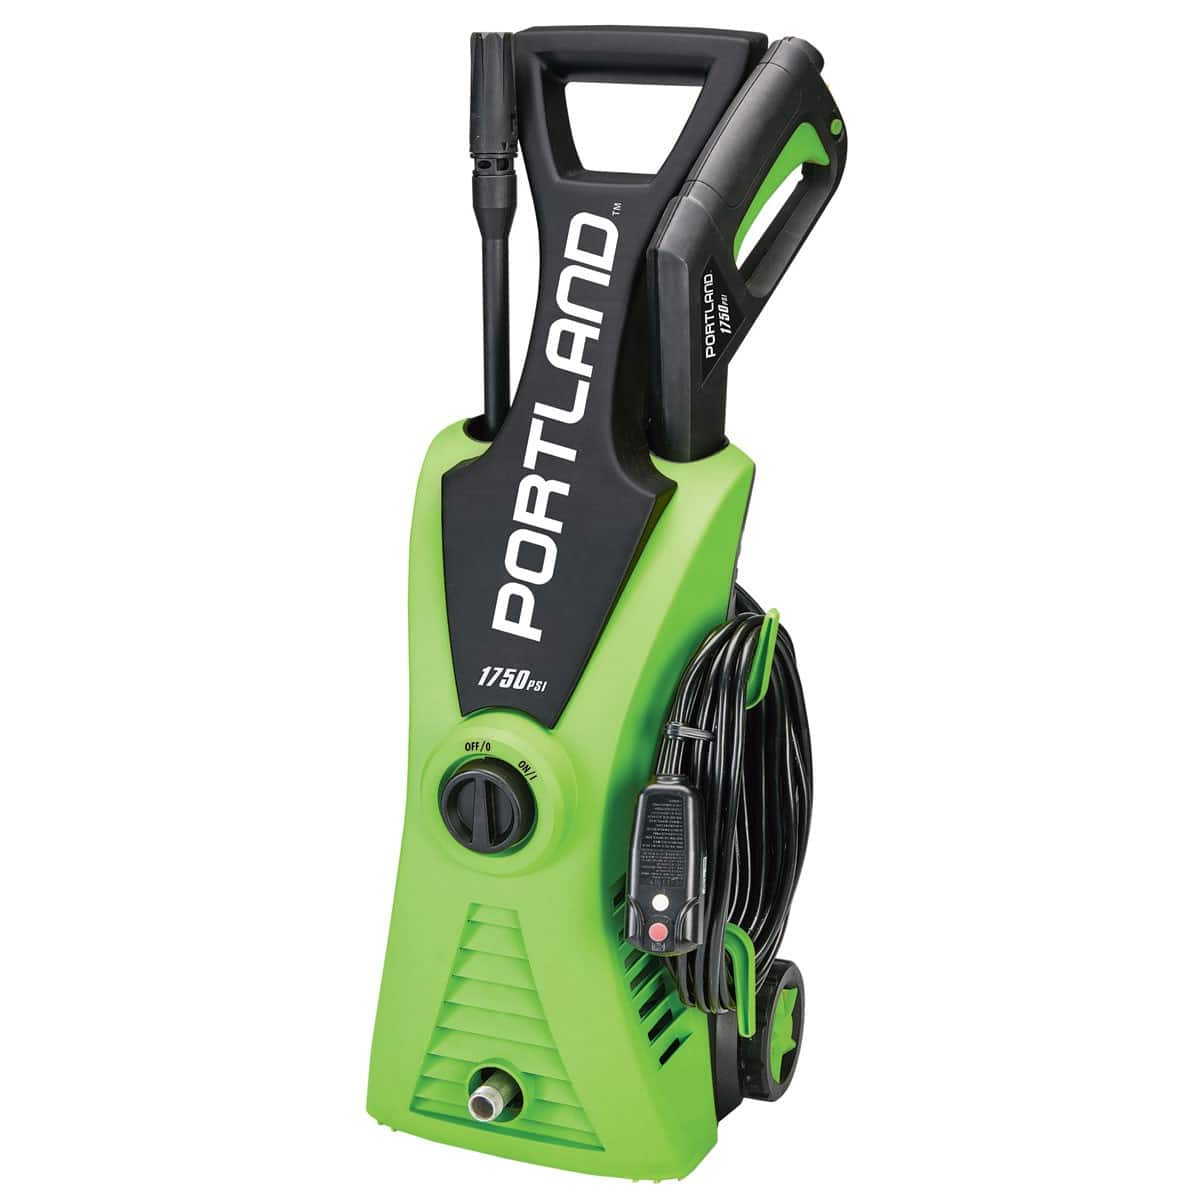 Portland Electric Pressure Washer 1750 PSI $79.99 at HF